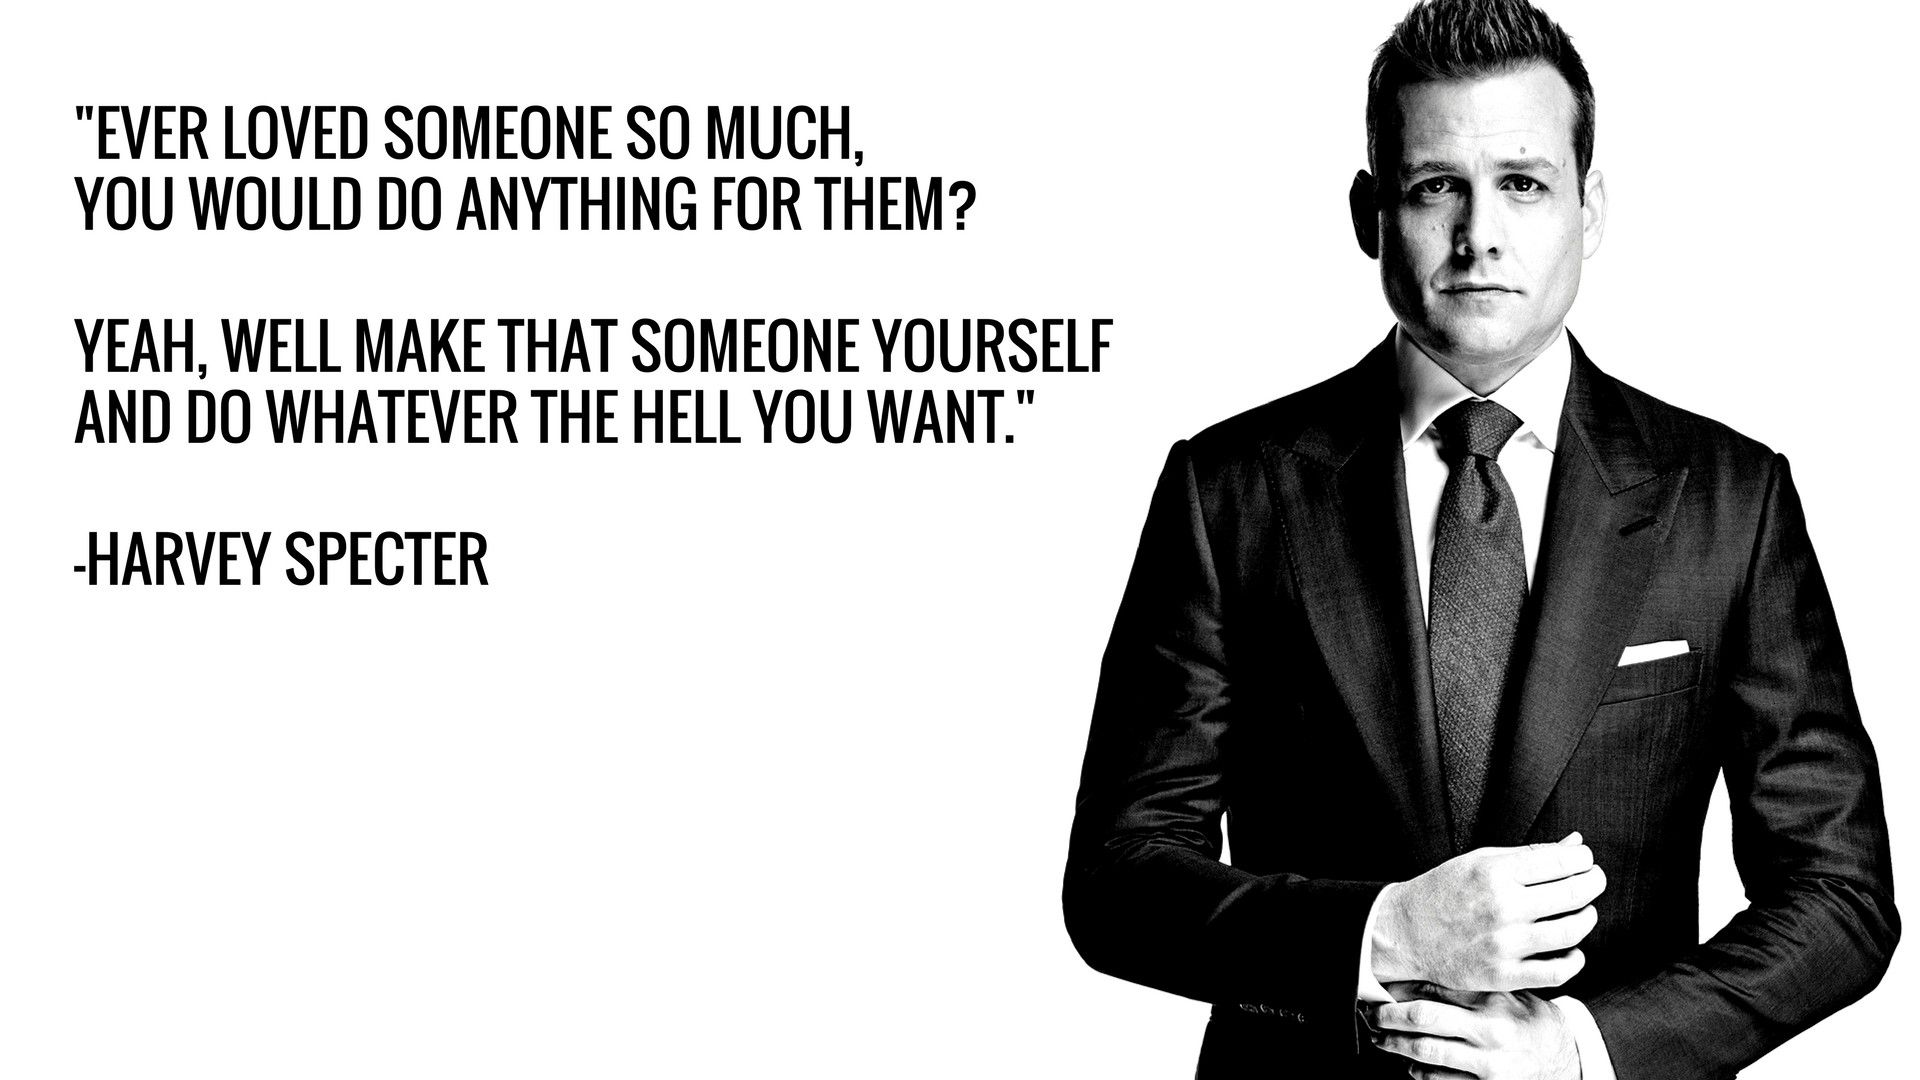 """EVER LOVED SOMEONE SO MUCH, YOU WOULD DO ANYTHING FOR THEM? YEAH, WELL MAKE THAT SOMEONE YOURSELF AND DO WHATEVER THE HELL YOU WANT."" -HARVEY SPECTER https://inspirational.ly"